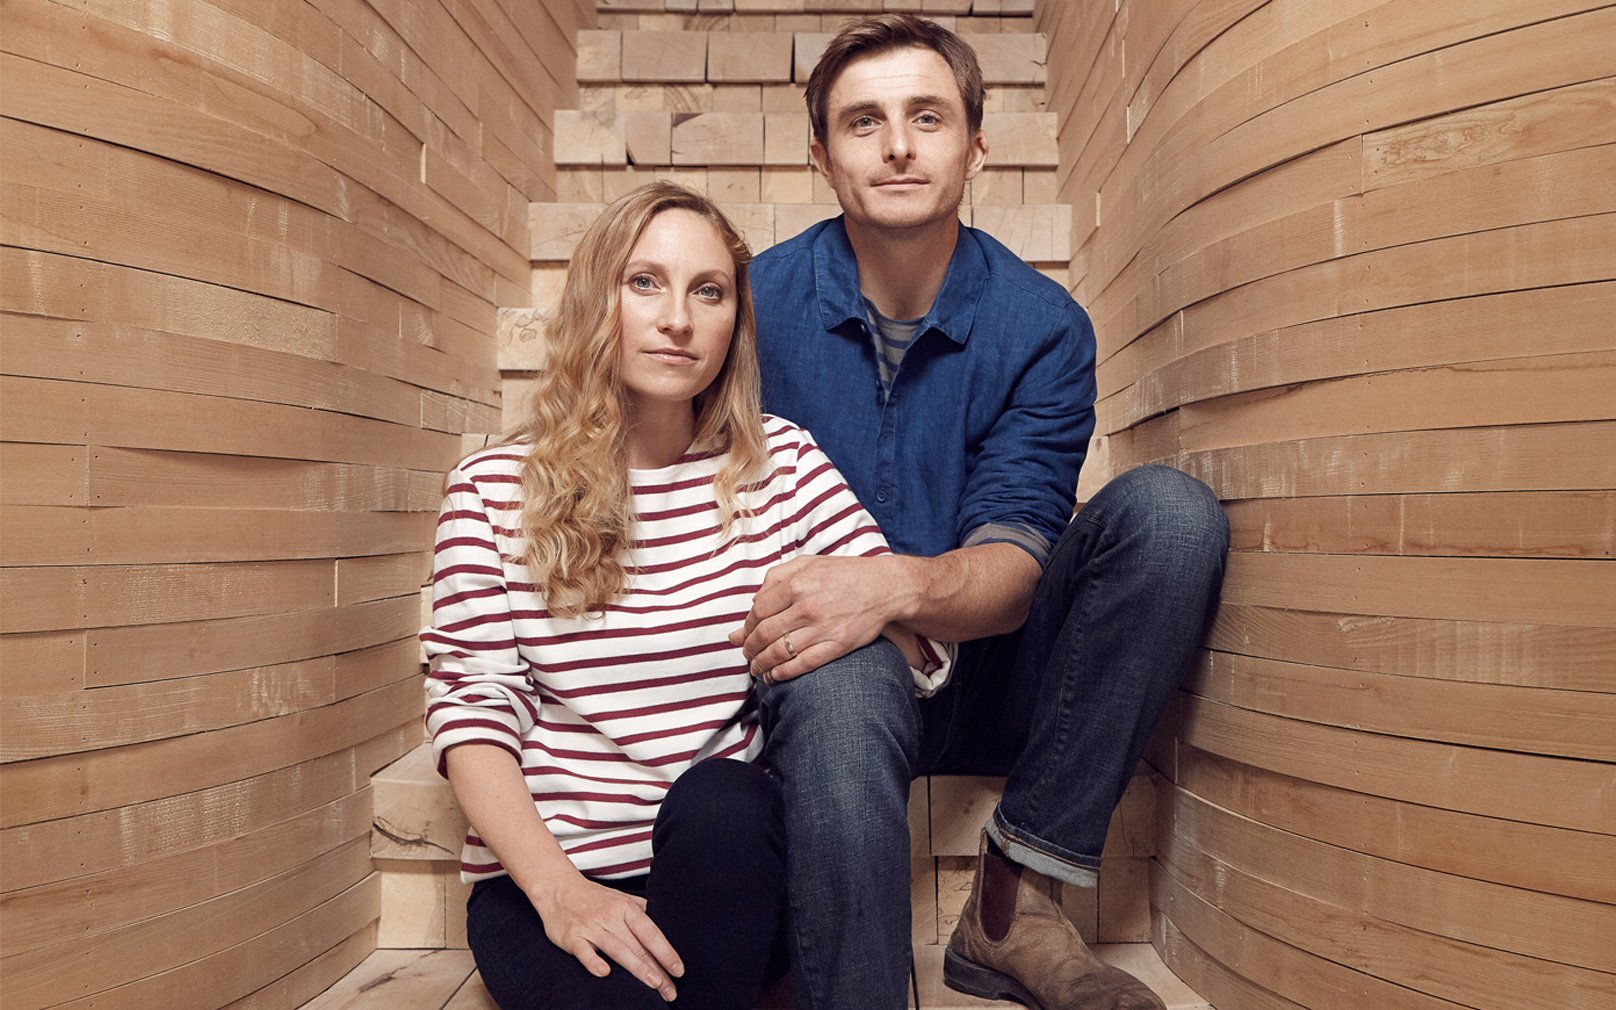 Tom and Danielle Raffield at home